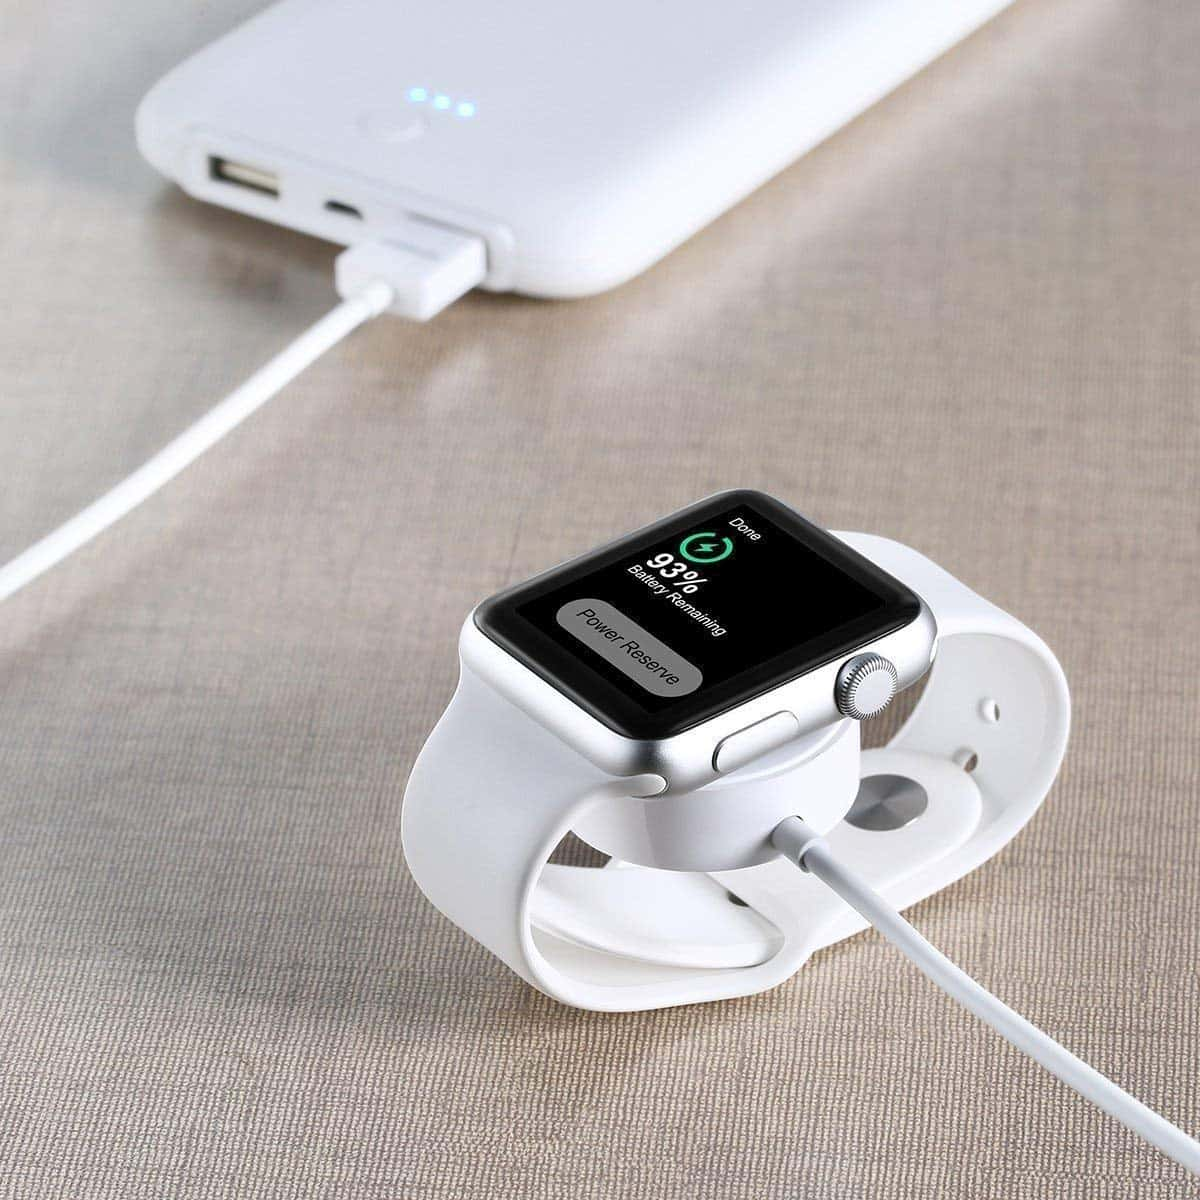 Apple Mfi Apple Watch Charger-min